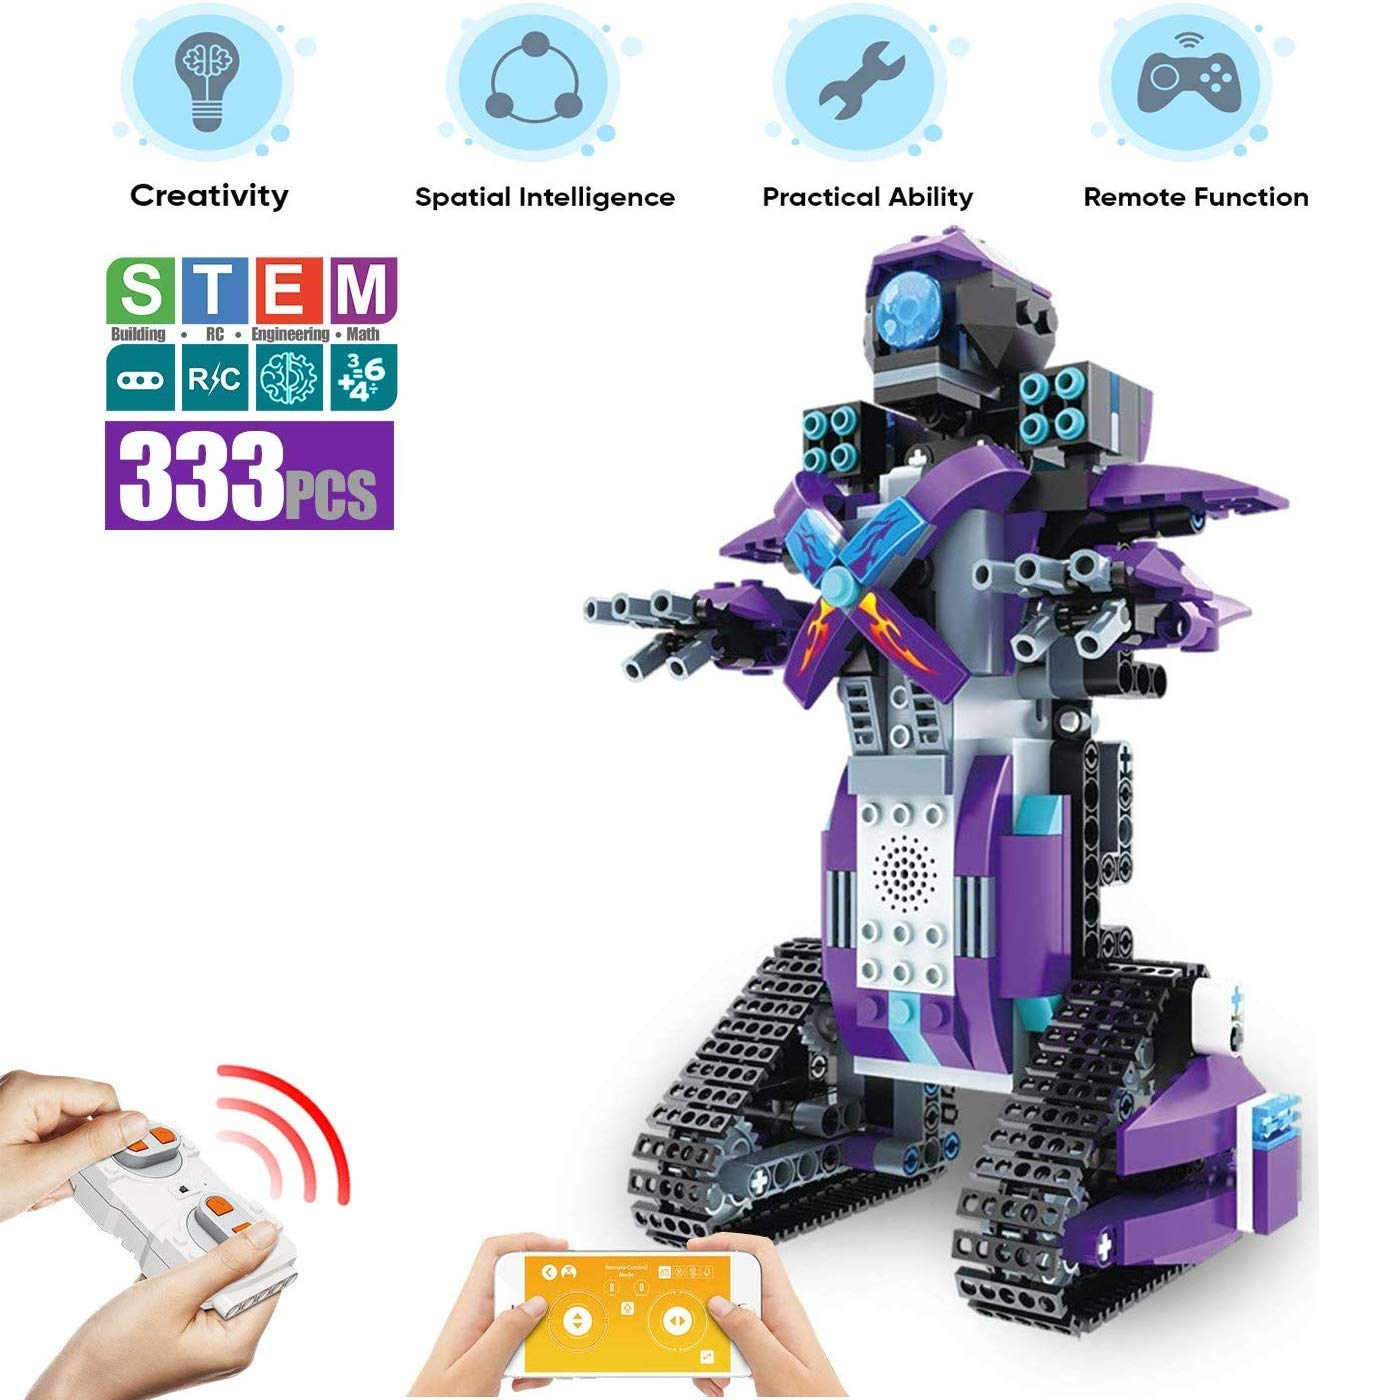 M&Ostyle STEM Remote Control Building Blocks Robot for Kids- Remote Control Engineering Science Educational Building Toys Kits for Boys and Girls Toys Intelligent Gift (Purple/333PCS) - wiihuu